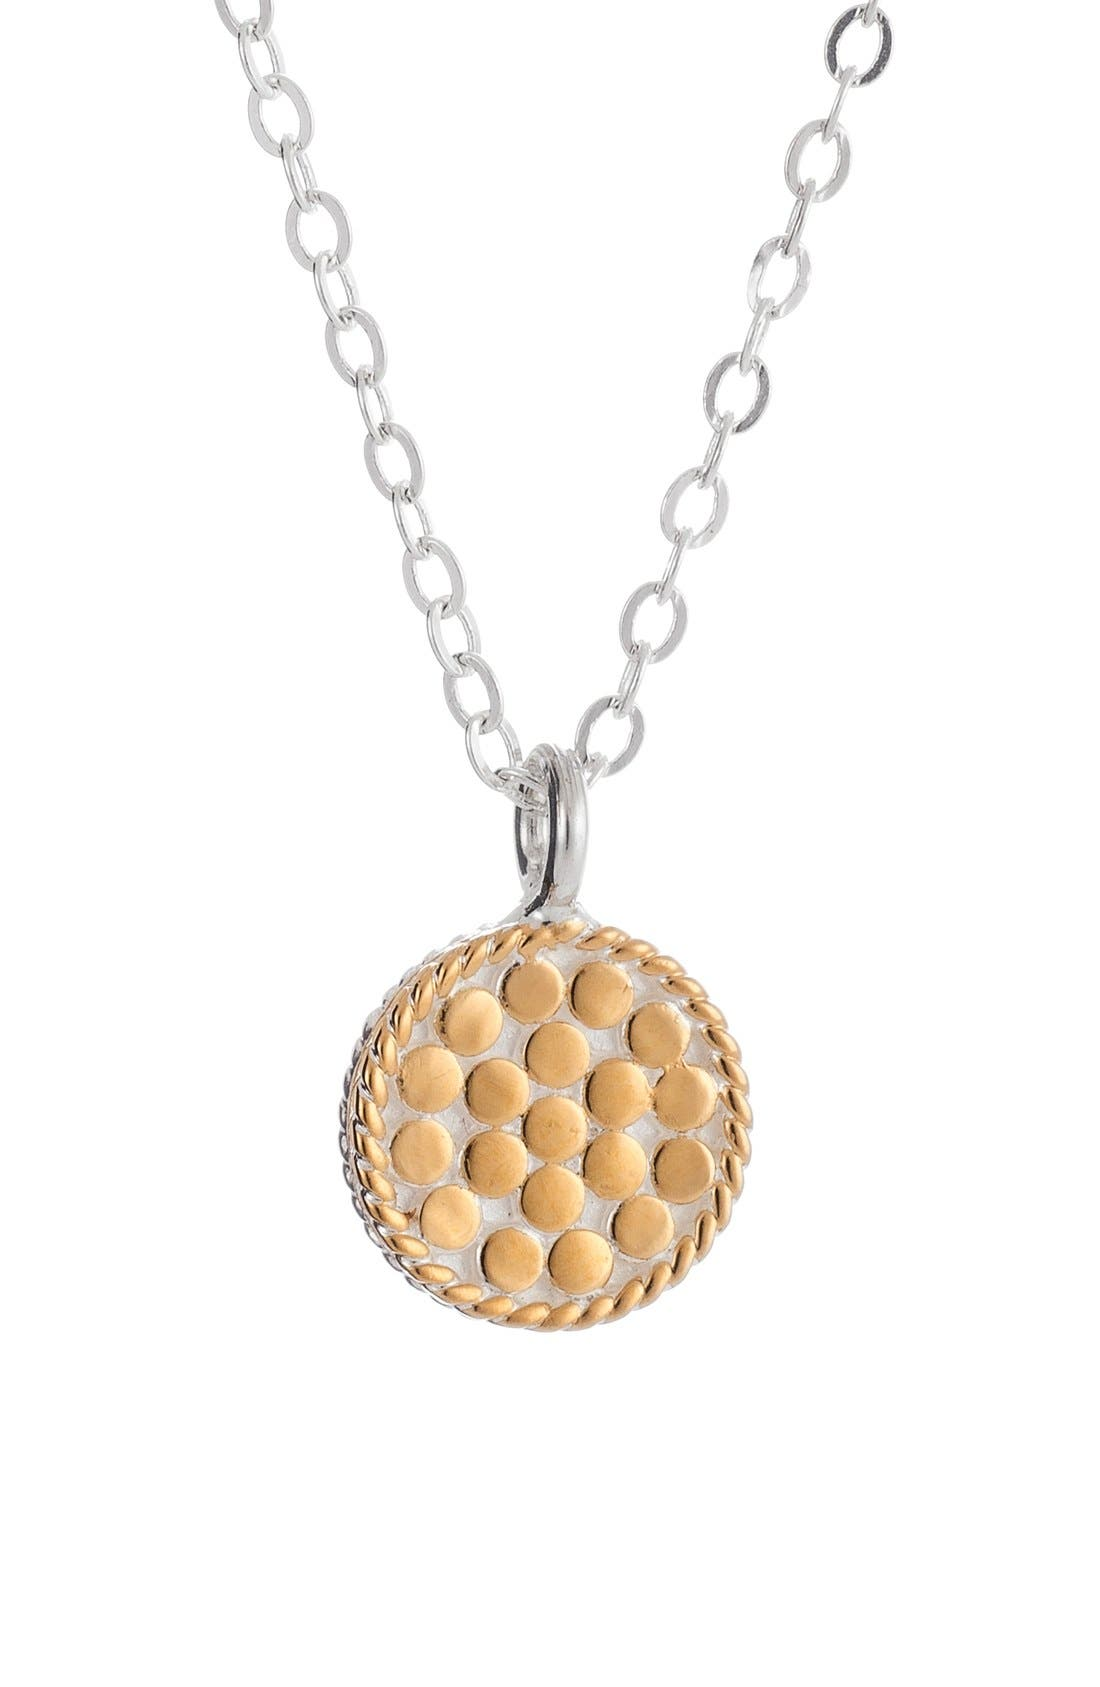 Alternate Image 1 Selected - Anna Beck 'Gili' Reversible Disc Pendant Necklace